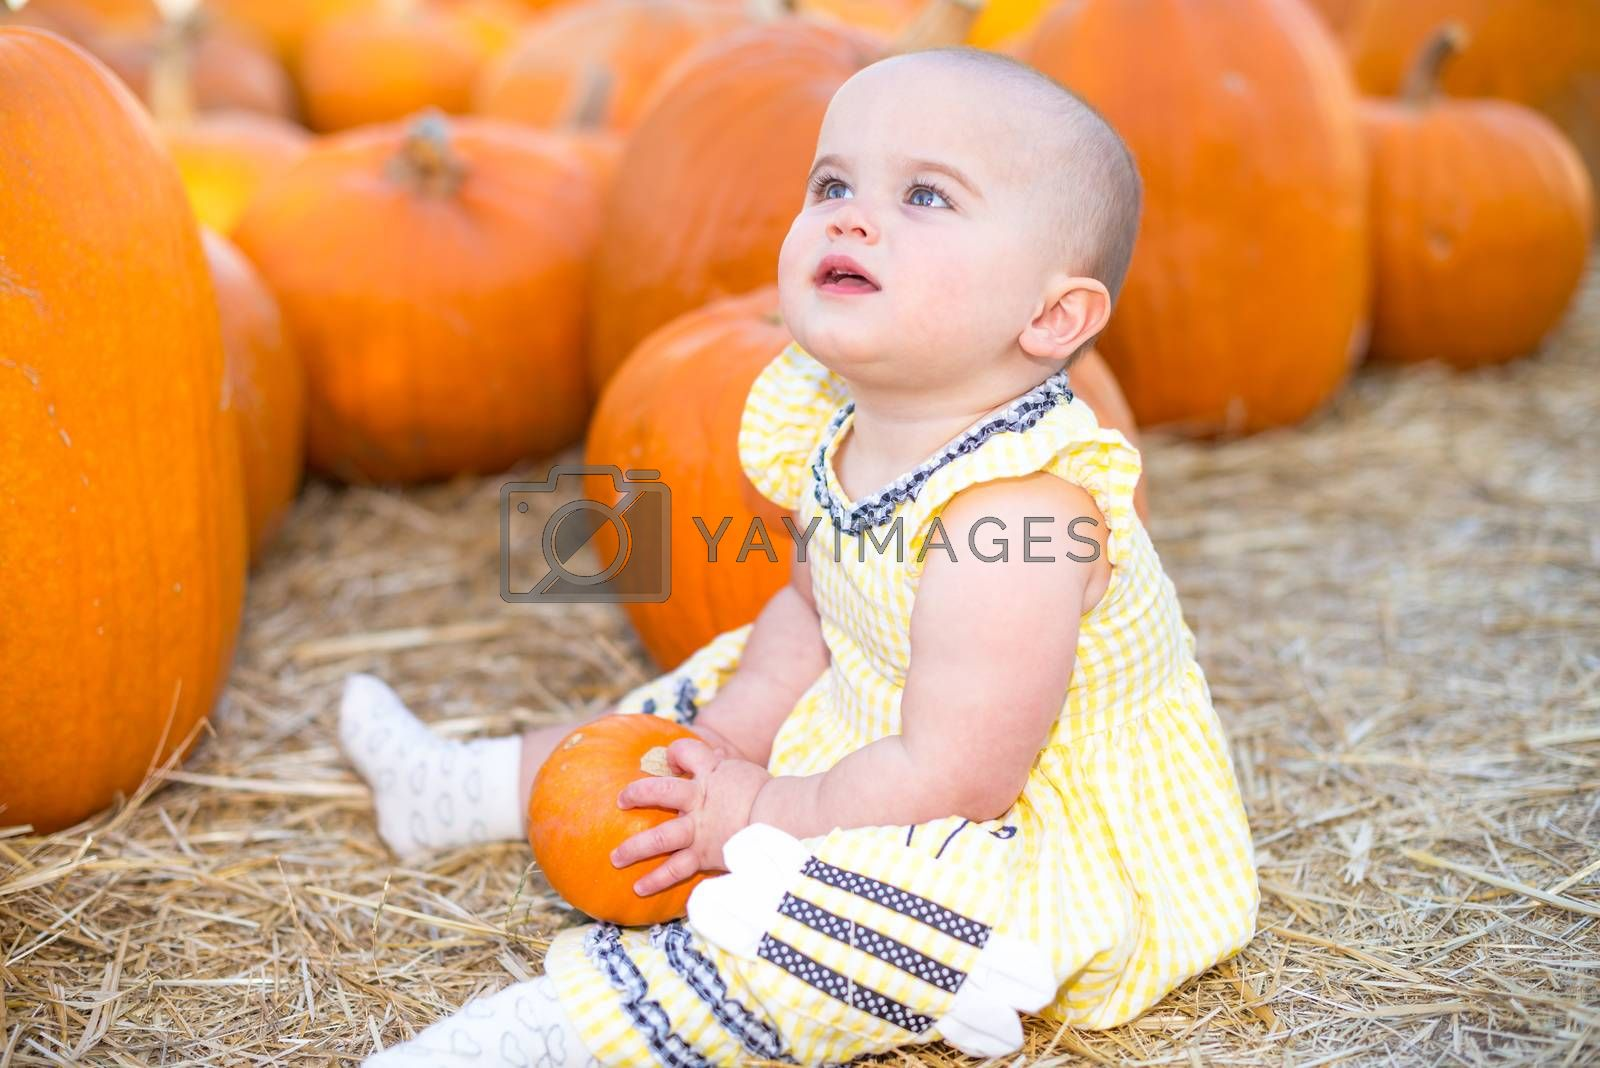 Cute Baby girl sitting on hay in a Pumpkin Patch